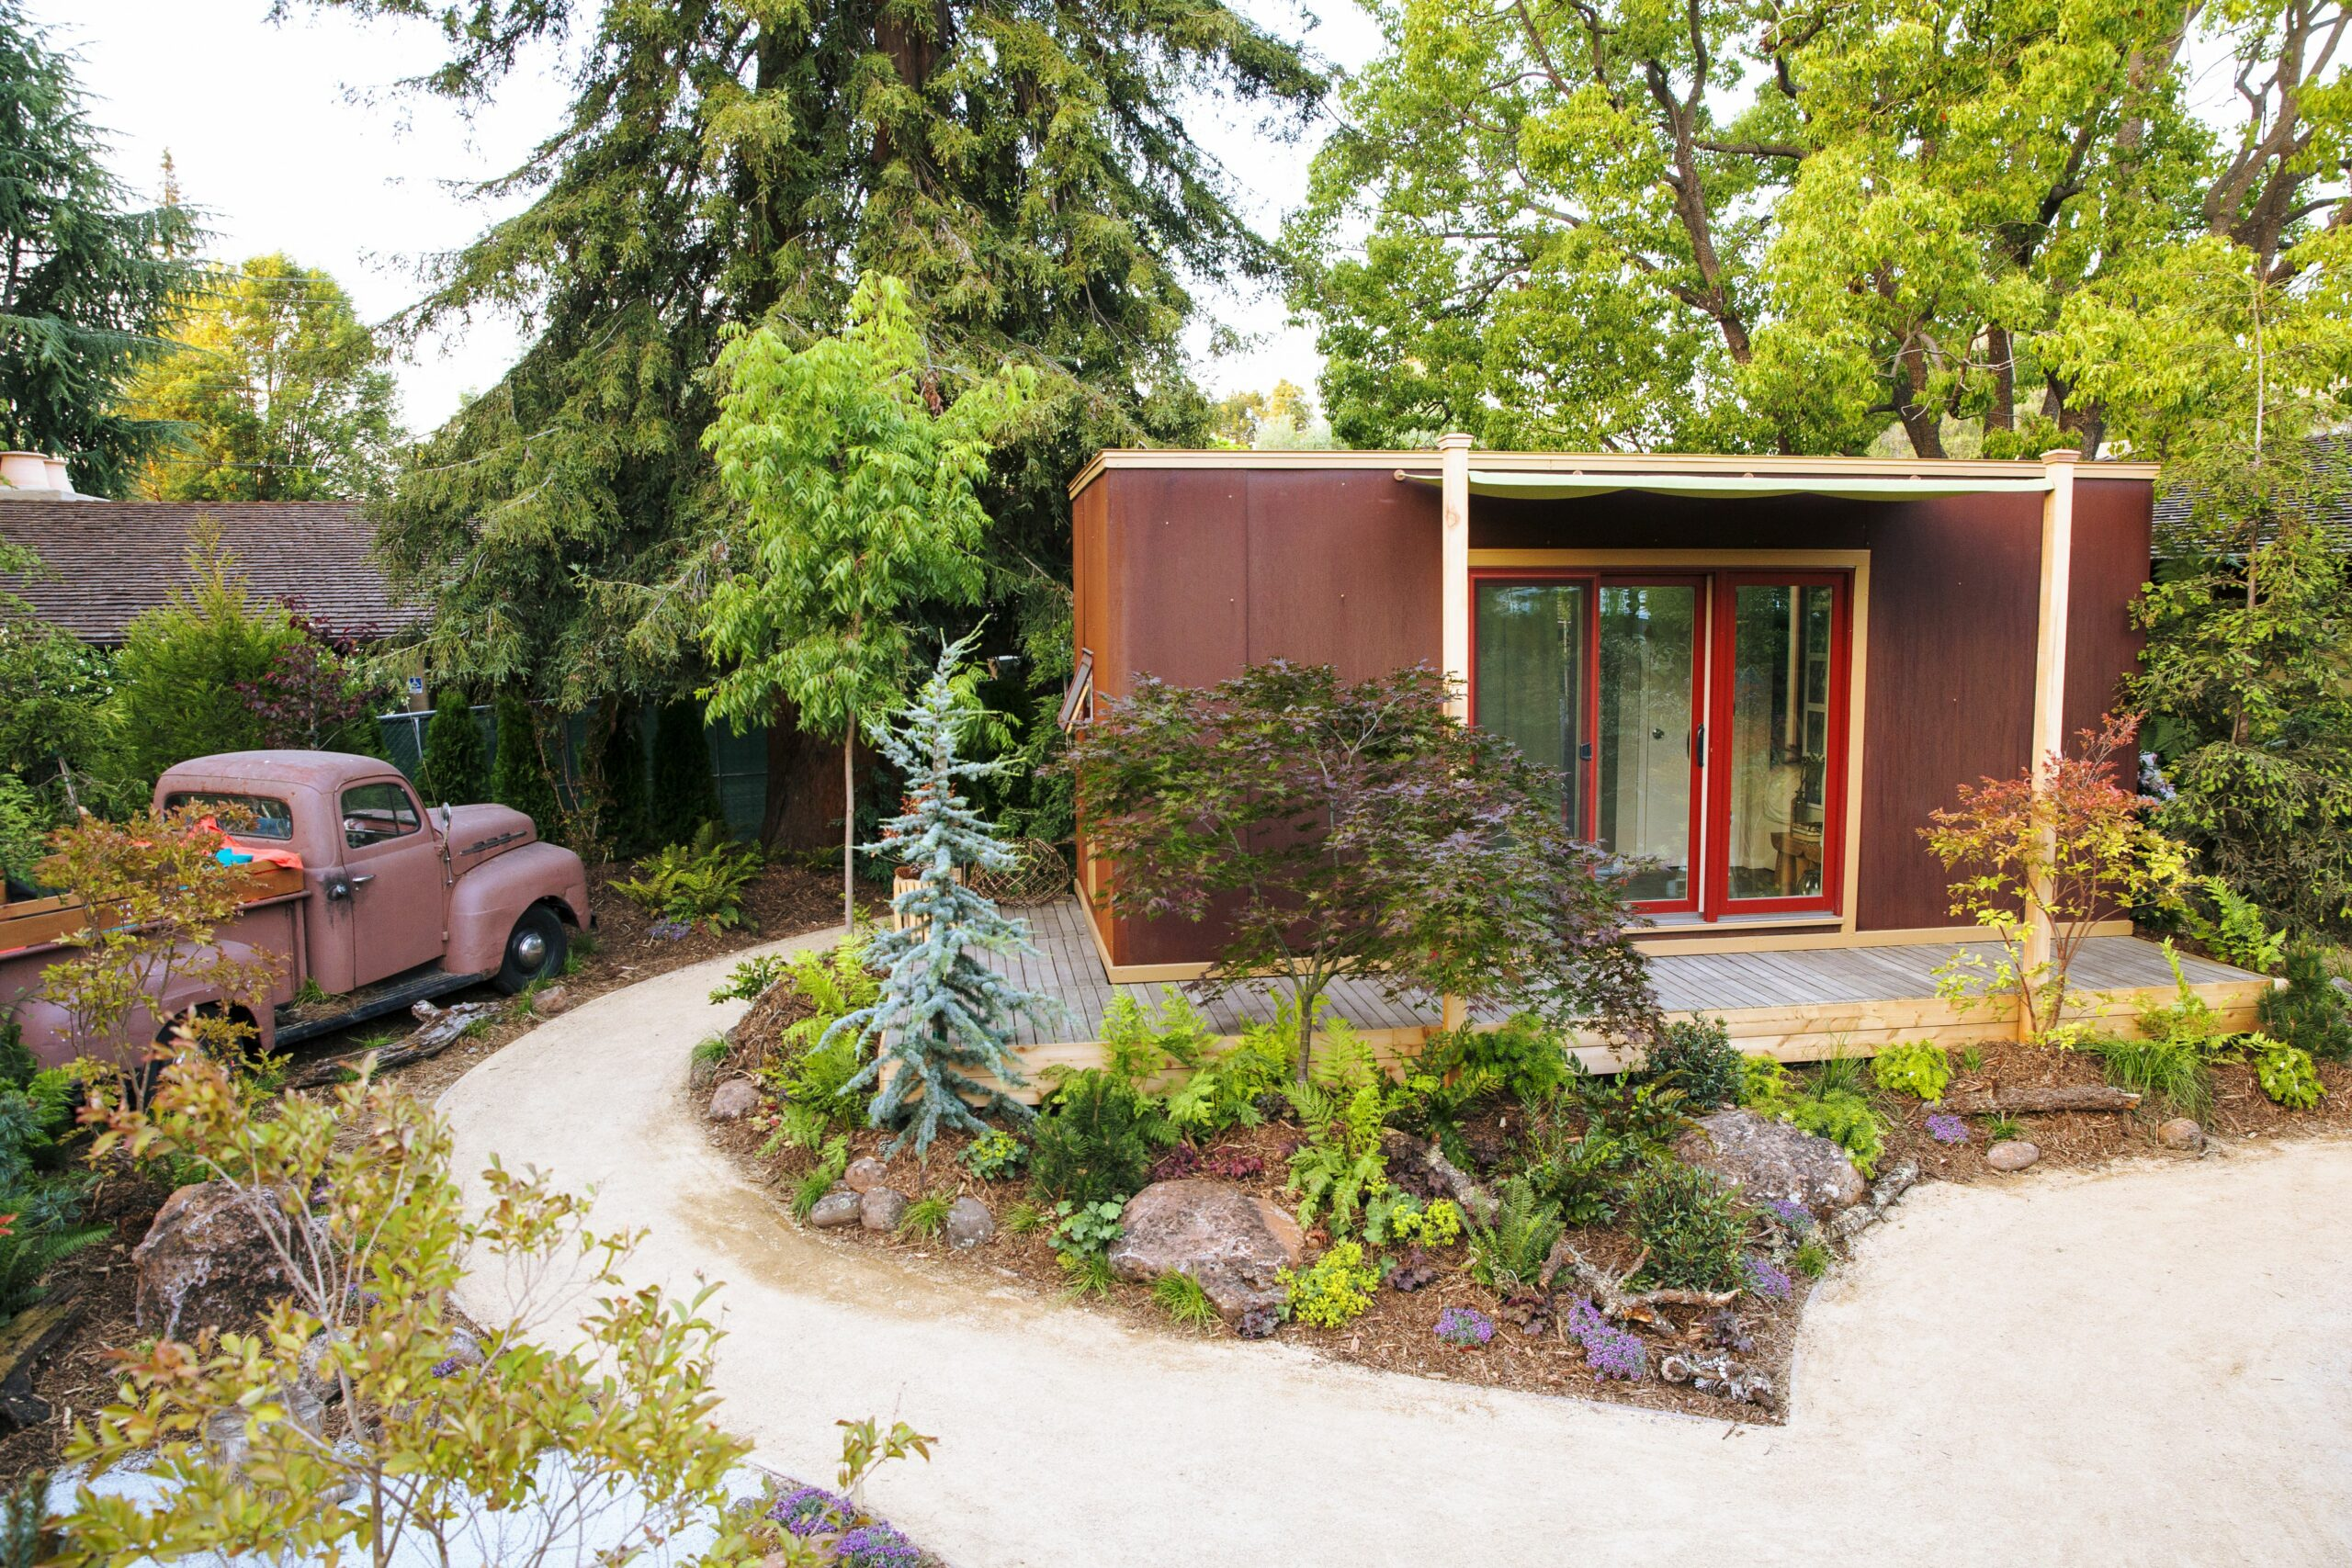 Create Your Own Tiny House's Woodland Retreat - Sunset Magazine